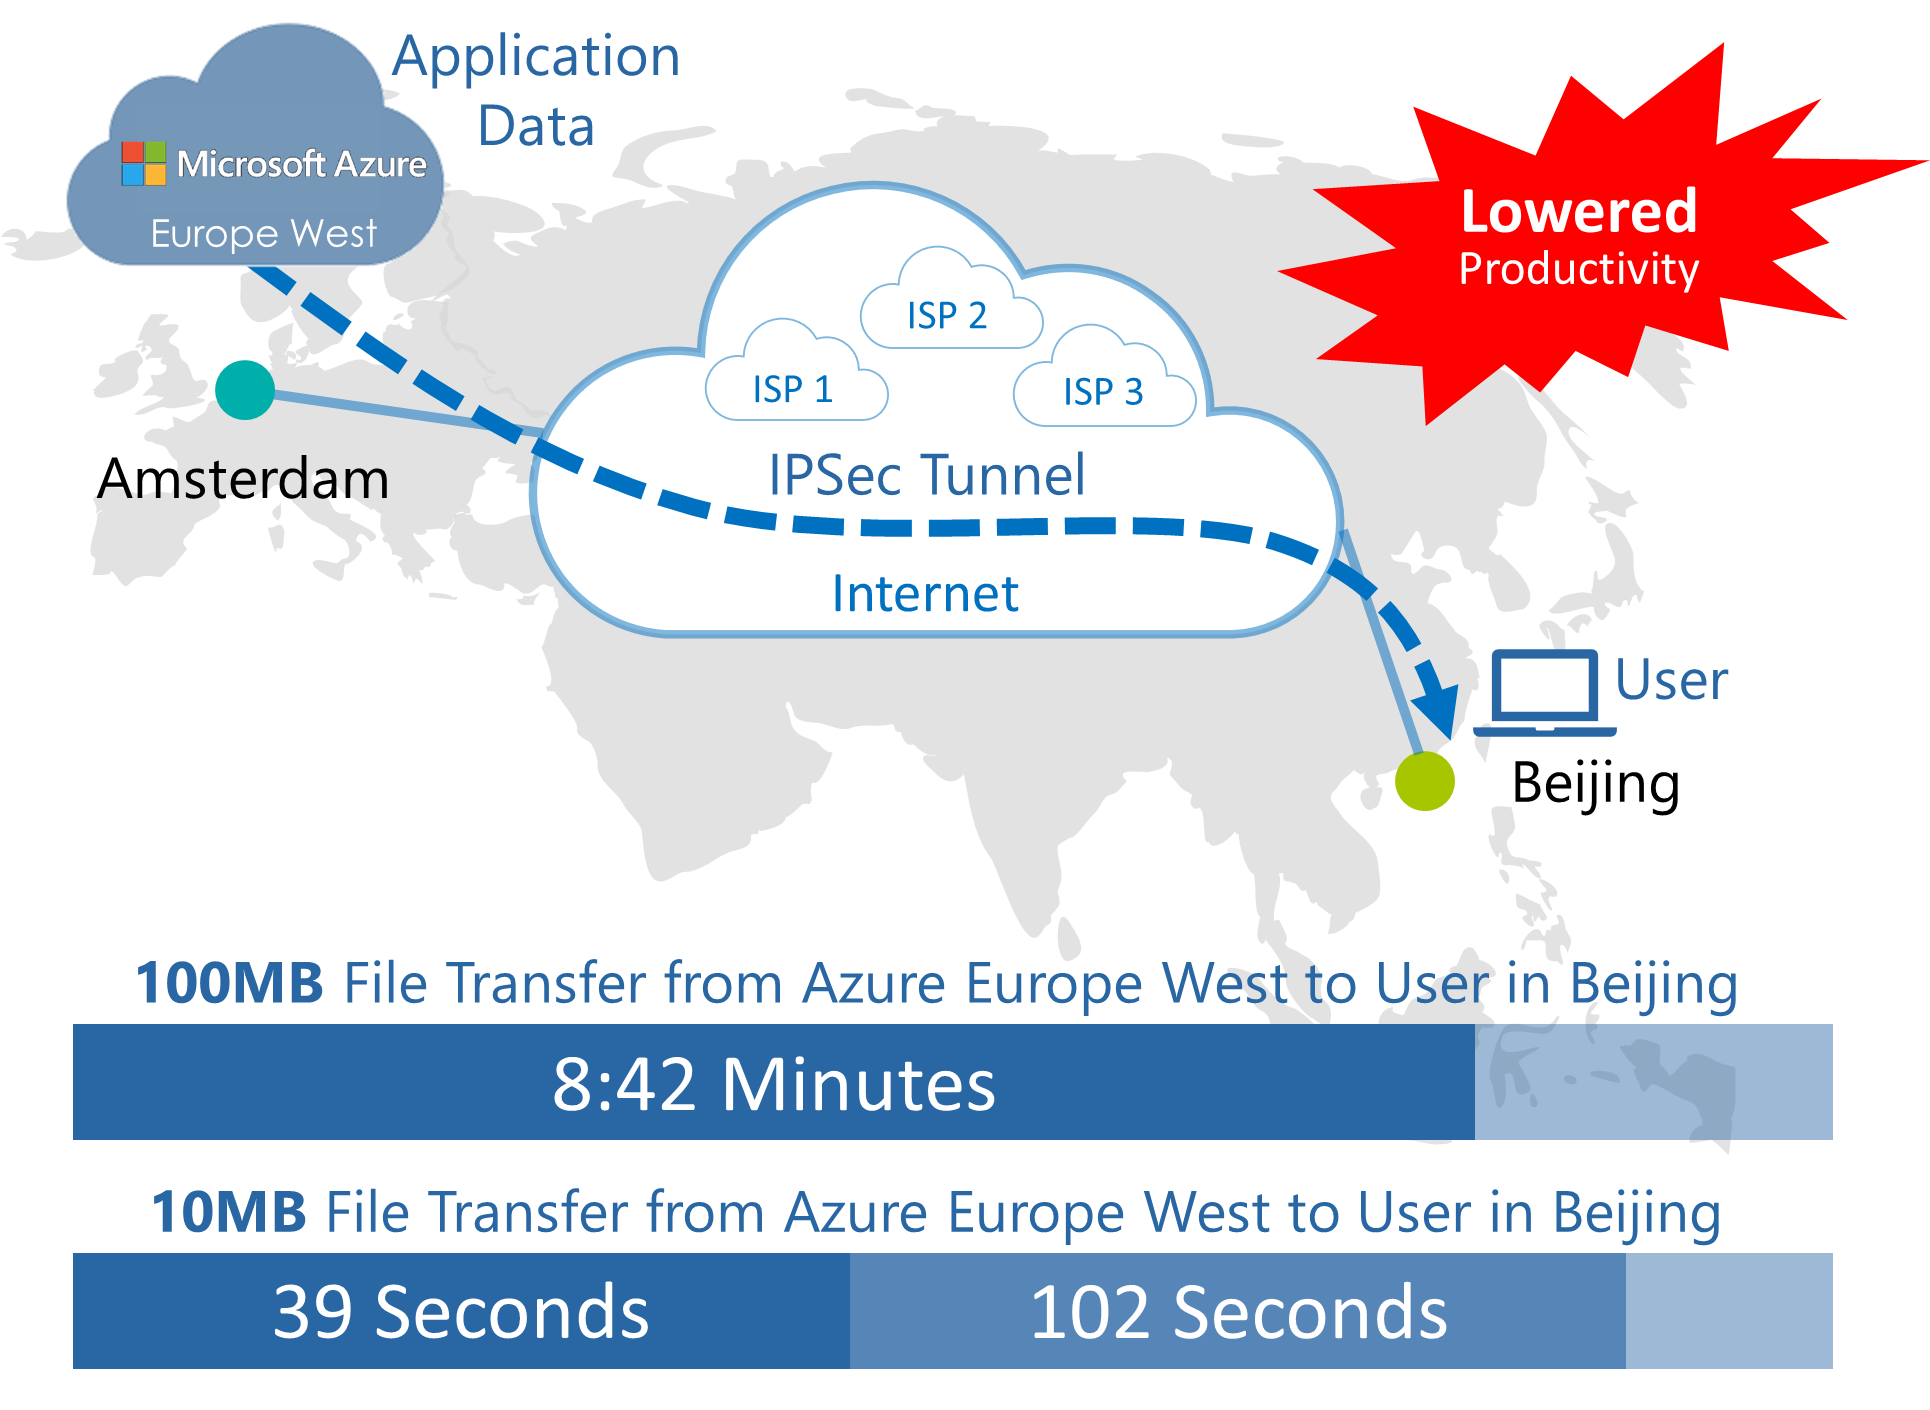 File Transfer over IPSec Tunnel